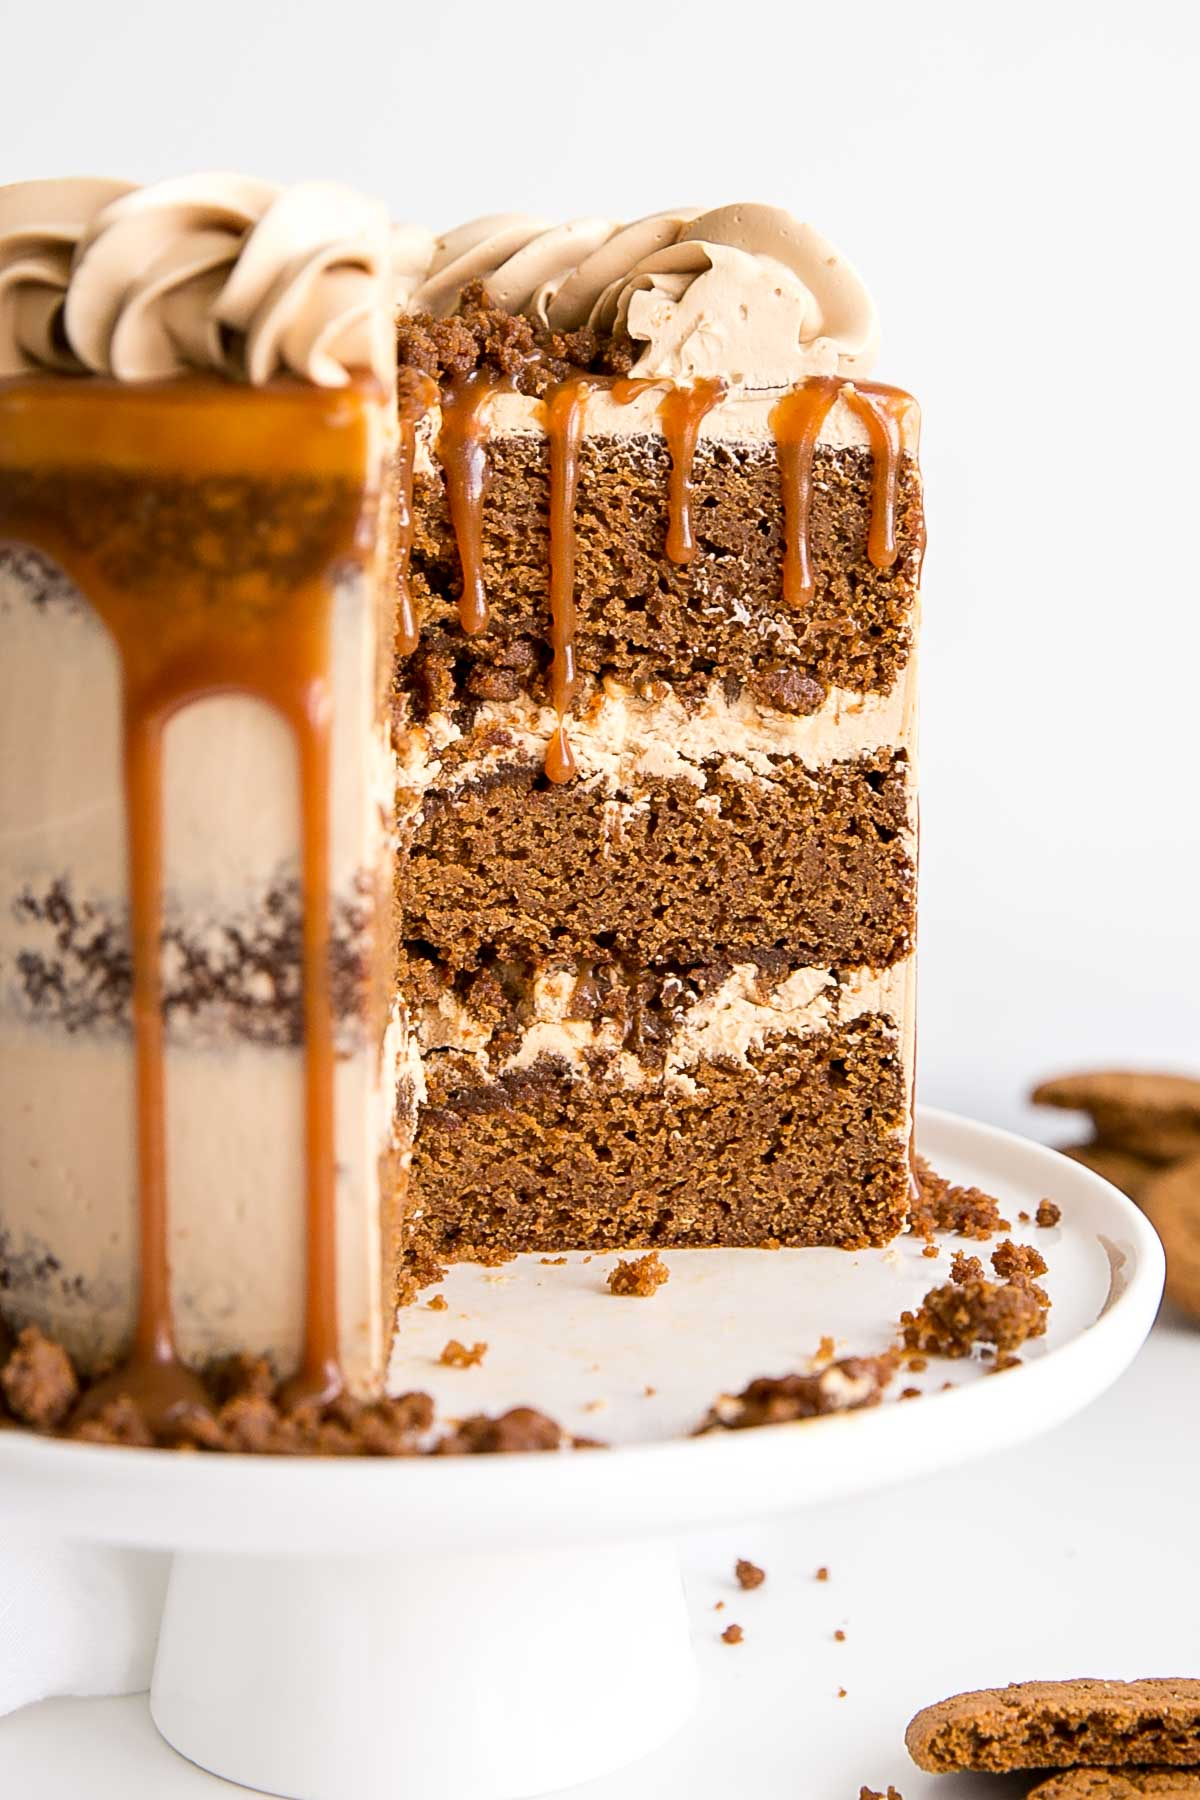 Cross-section of a gingerbread cake with caramel Swiss meringue buttercream.